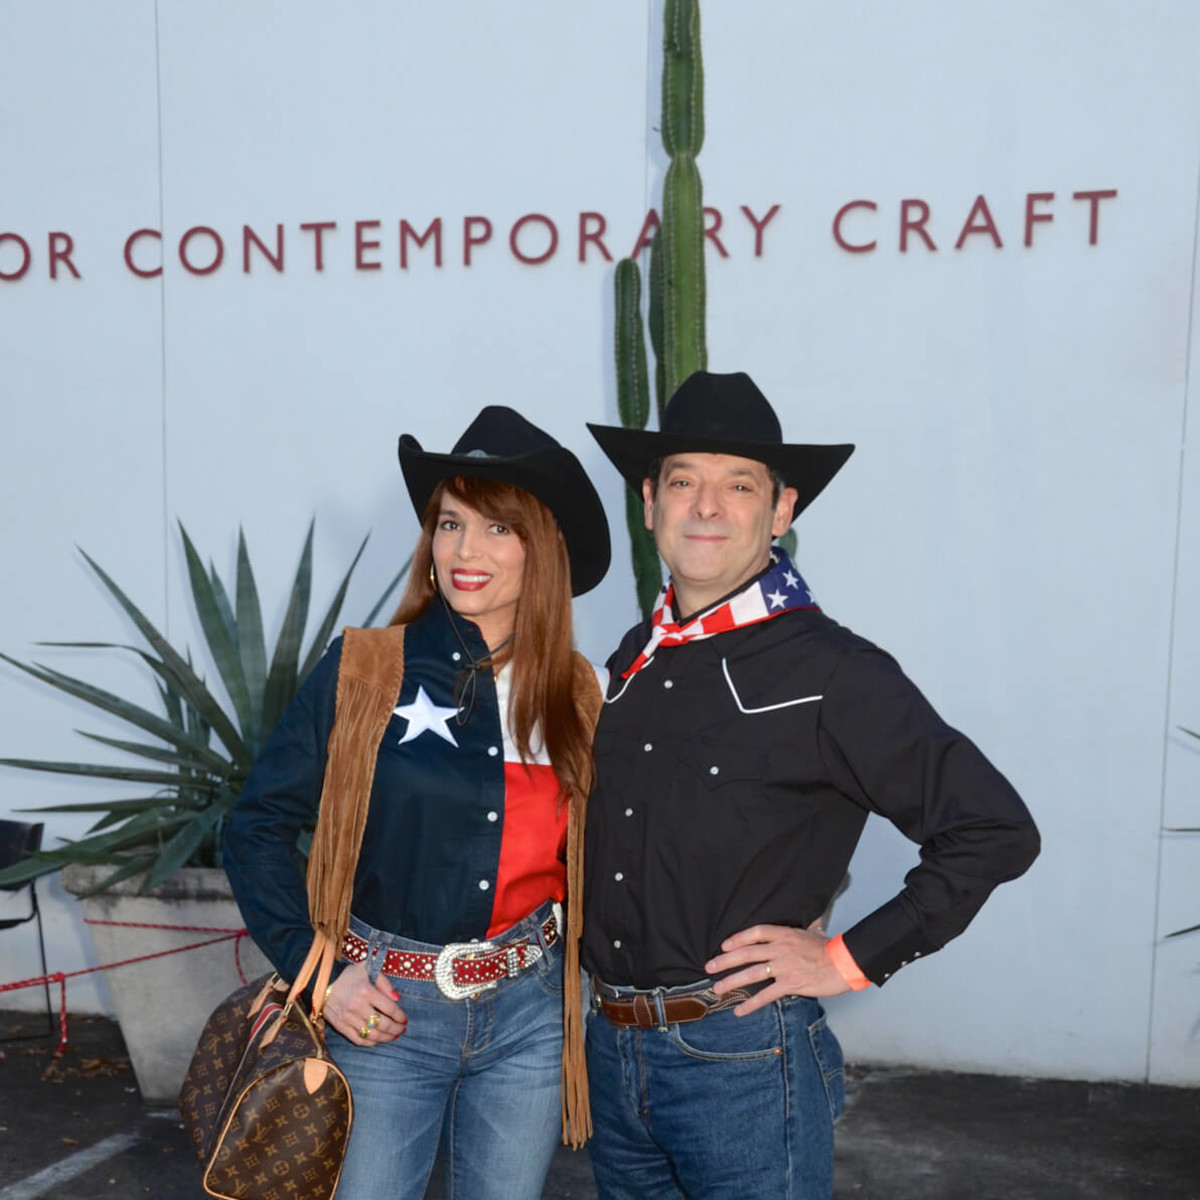 Craft Center Houston, 9/16, Karina Barbieri, Carlos Barbieri